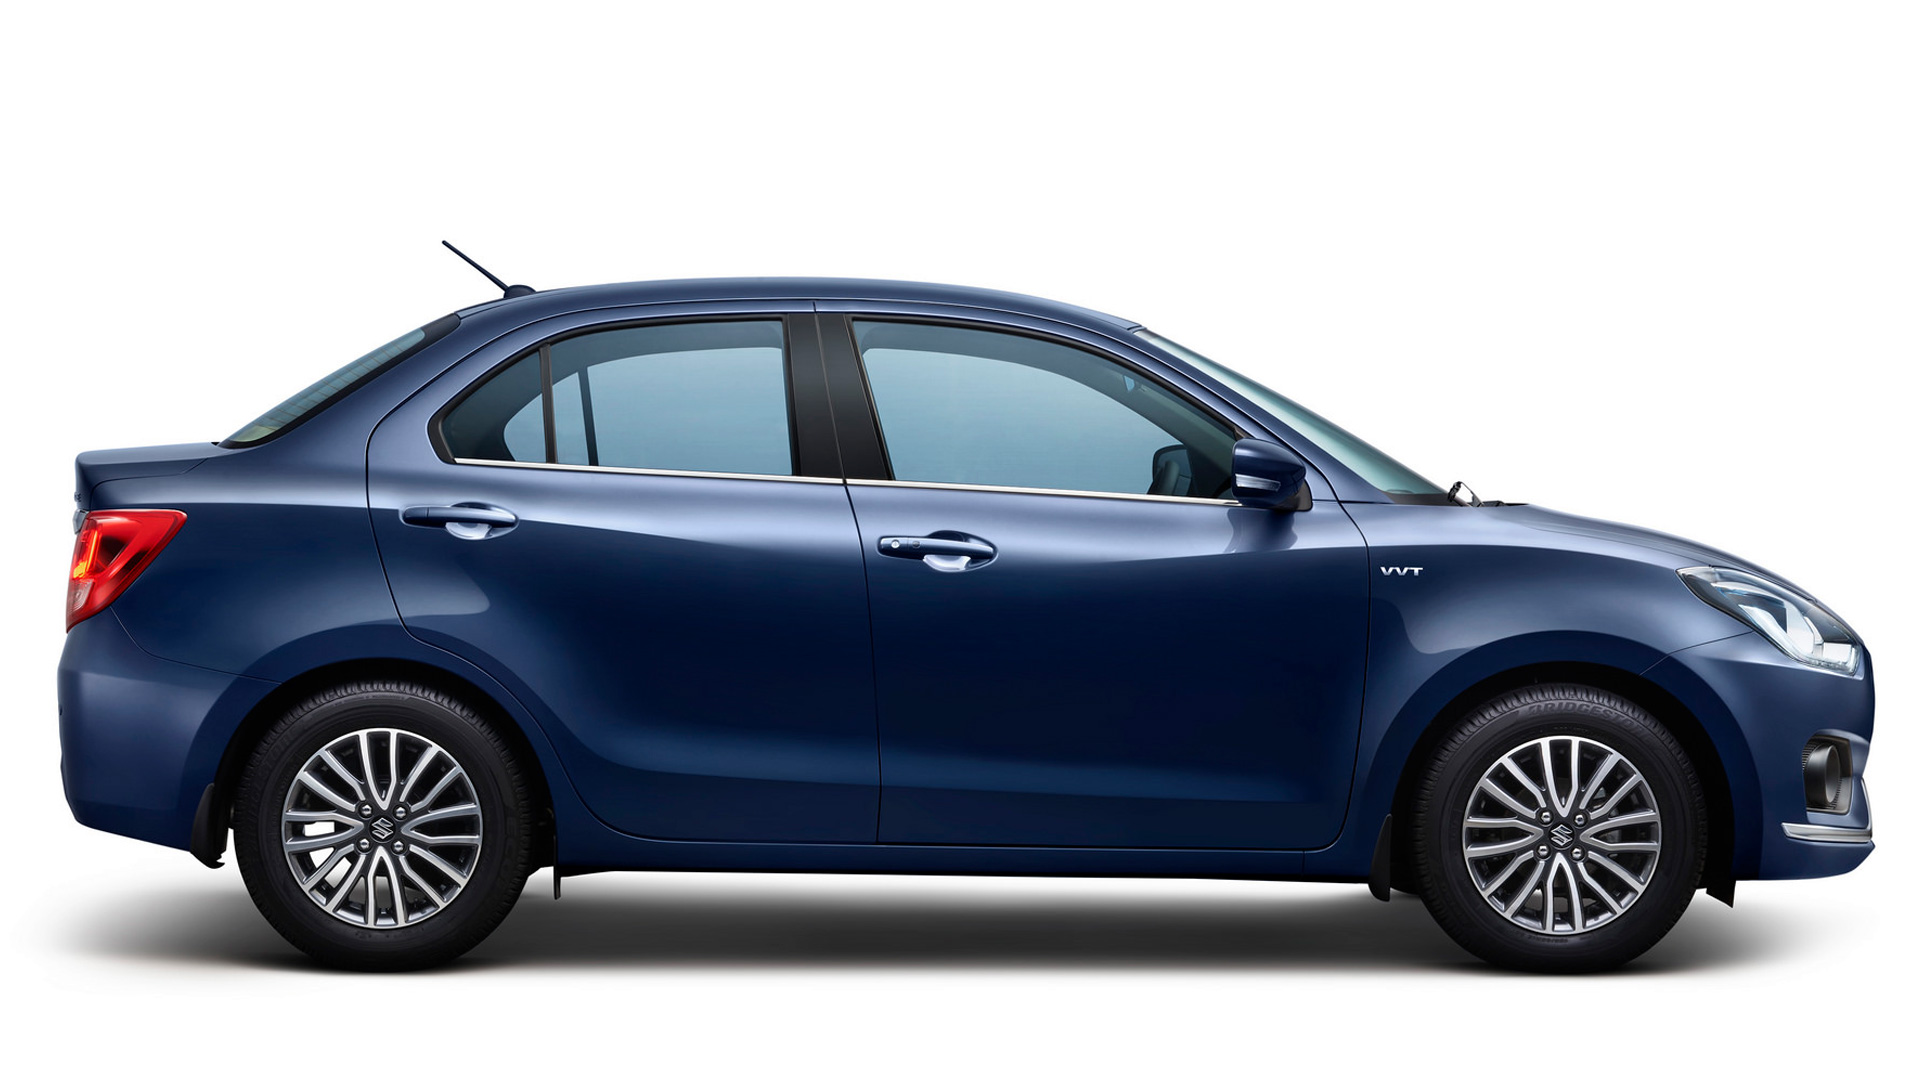 Maruti Suzuki Dzire 2017 Ldi Price Mileage Reviews